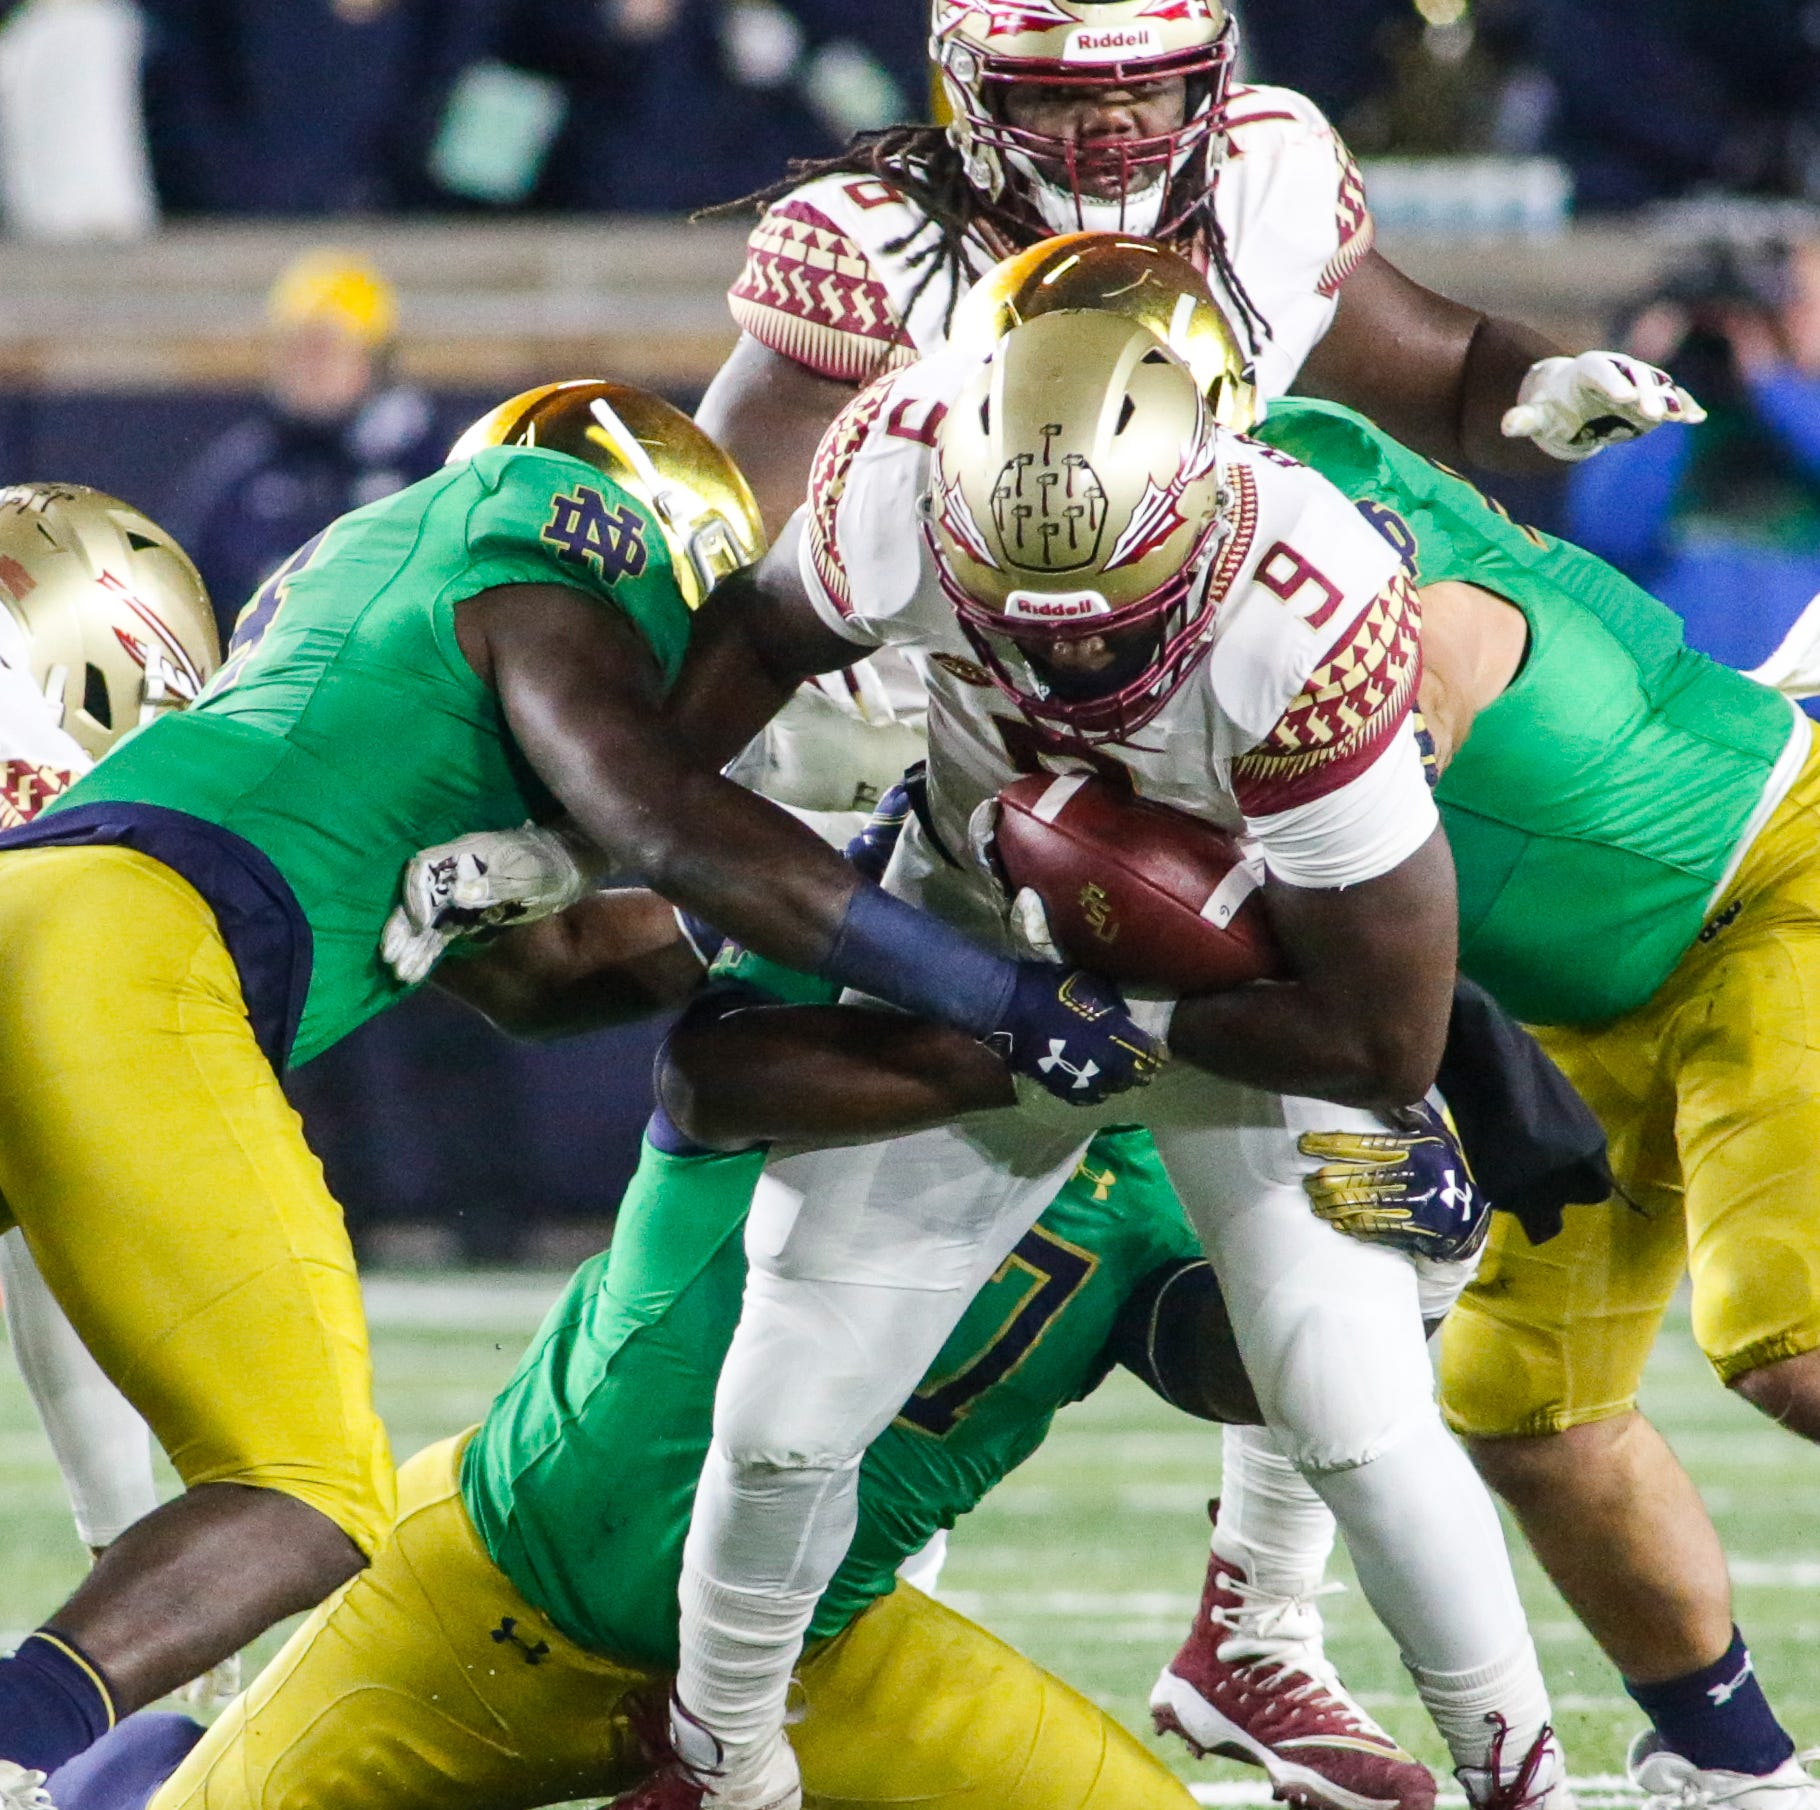 Florida State senior running back Jaques Patrick, 9, struggles to break through the Notre Dame defensive line during the second quarter in South Bend on Saturday.